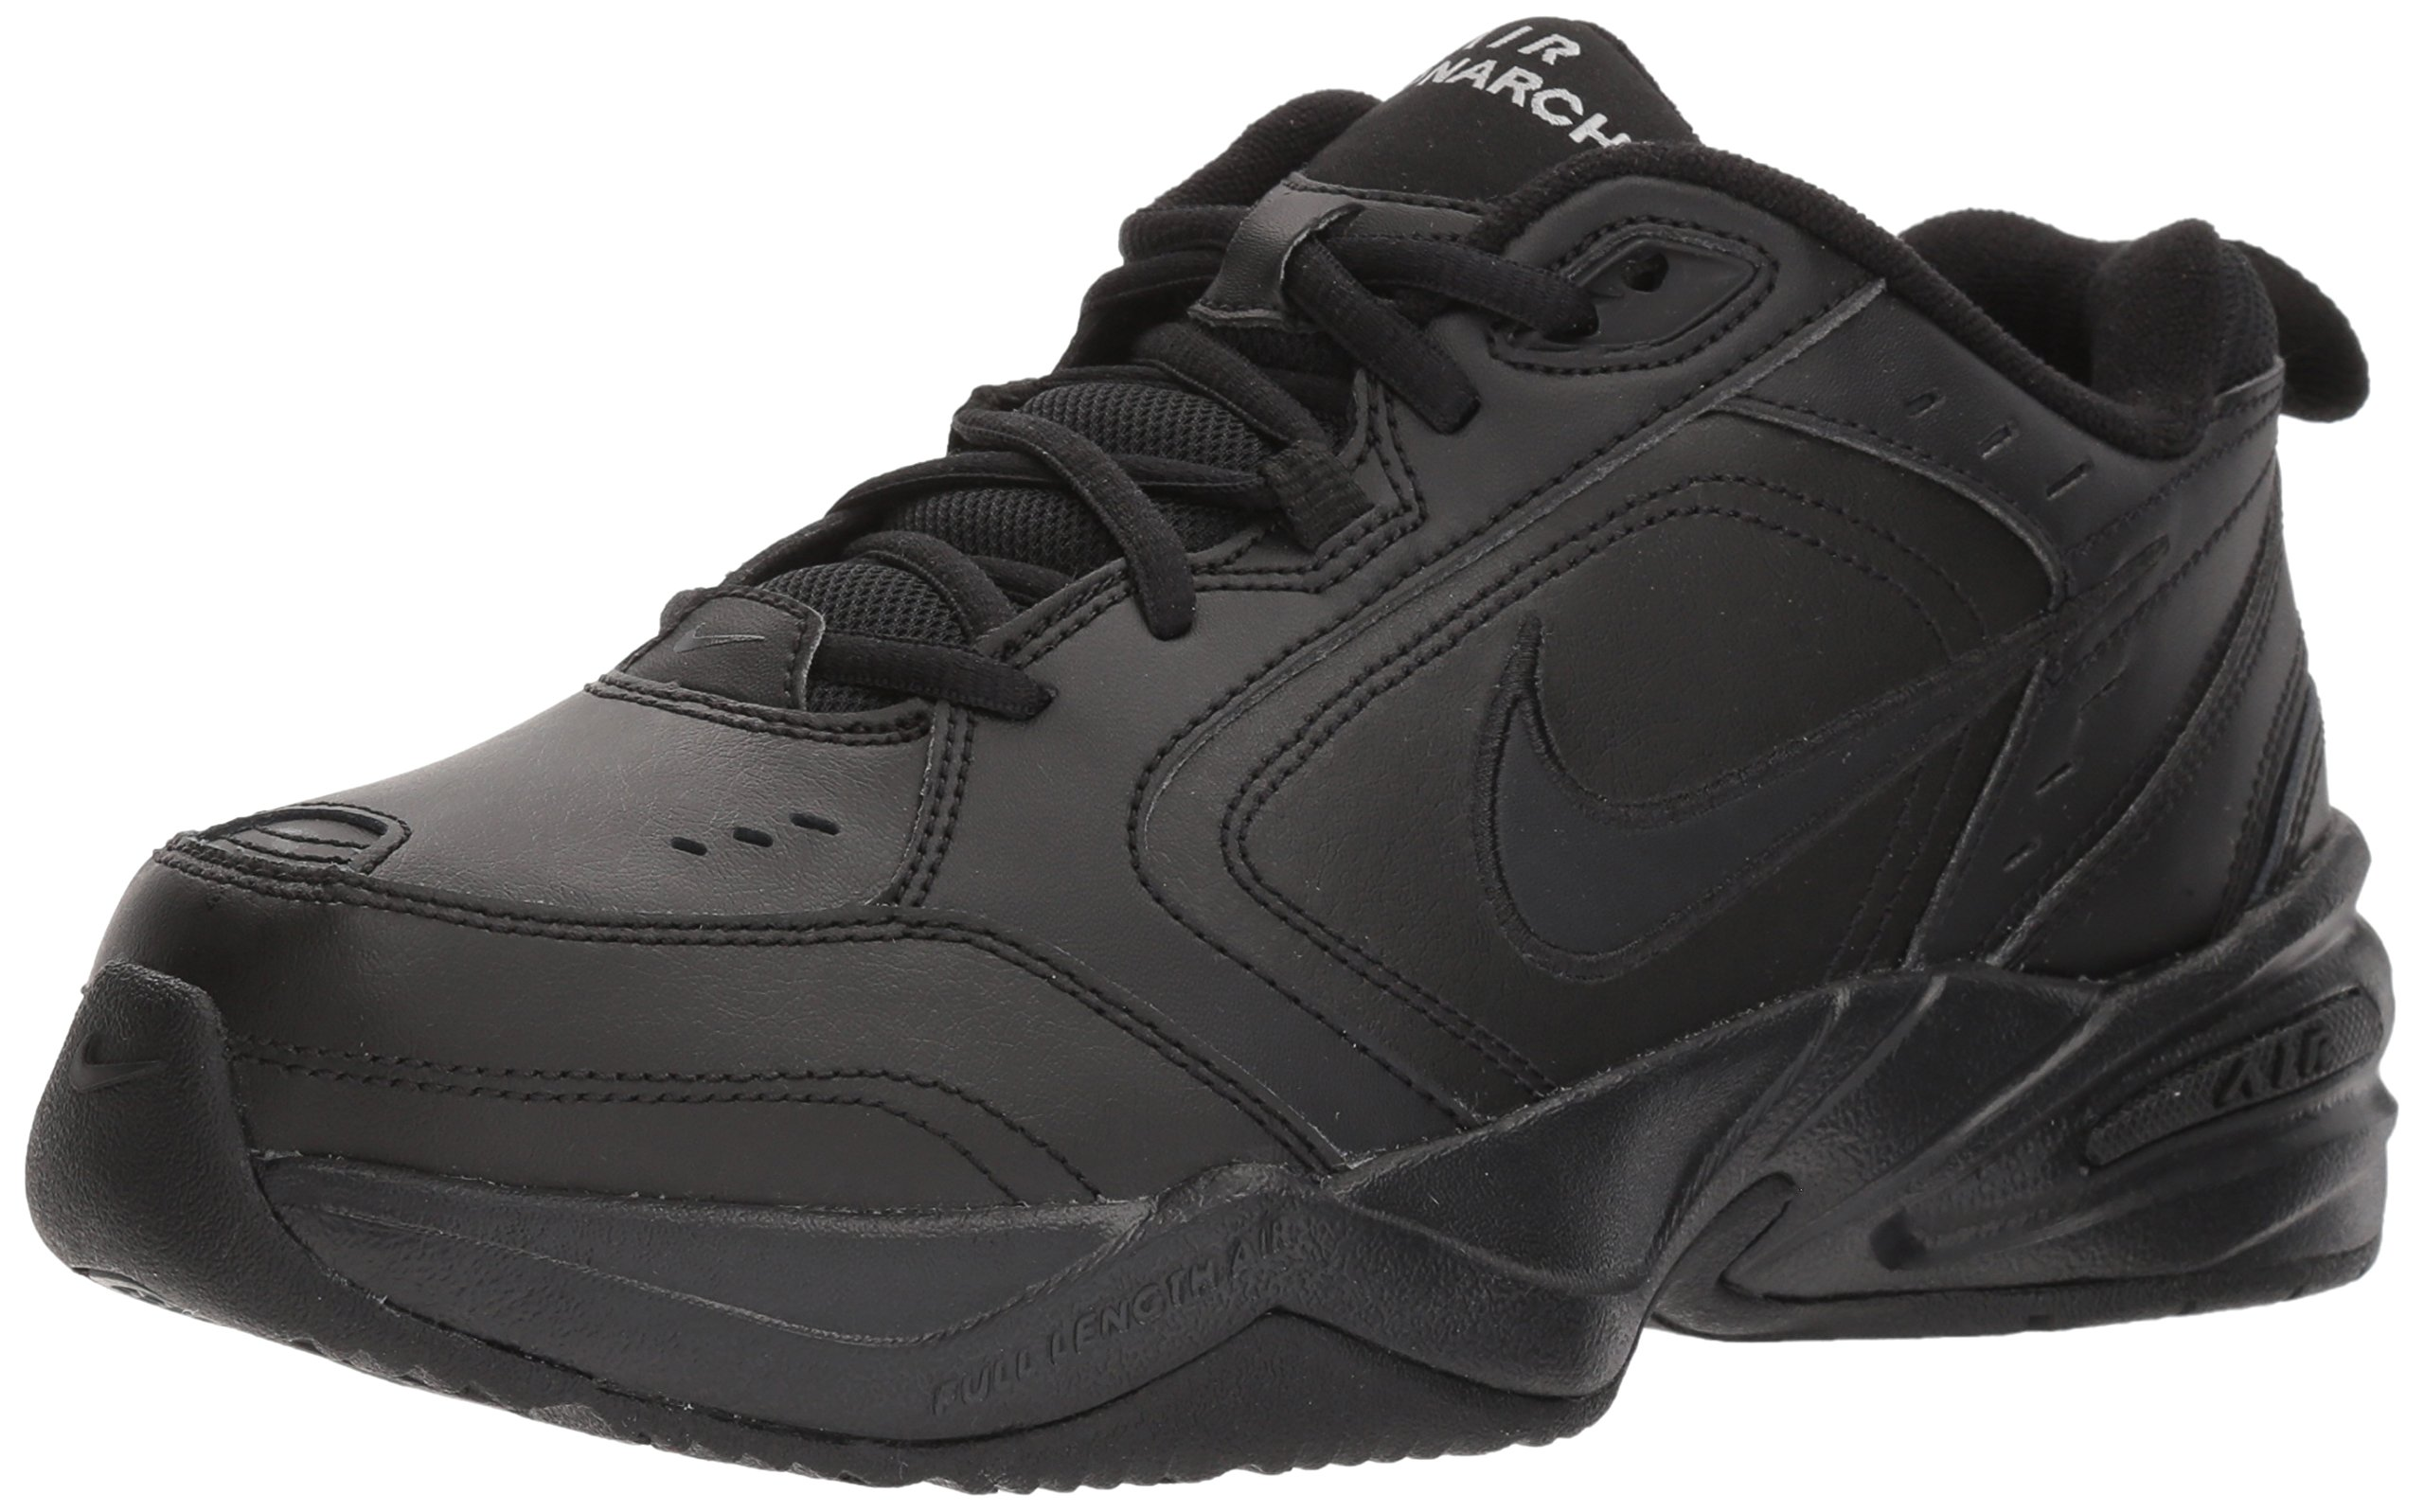 831833a96f4d0 Galleon - Nike Men's Air Monarch IV Cross Trainer, Black, 10.0 Regular US